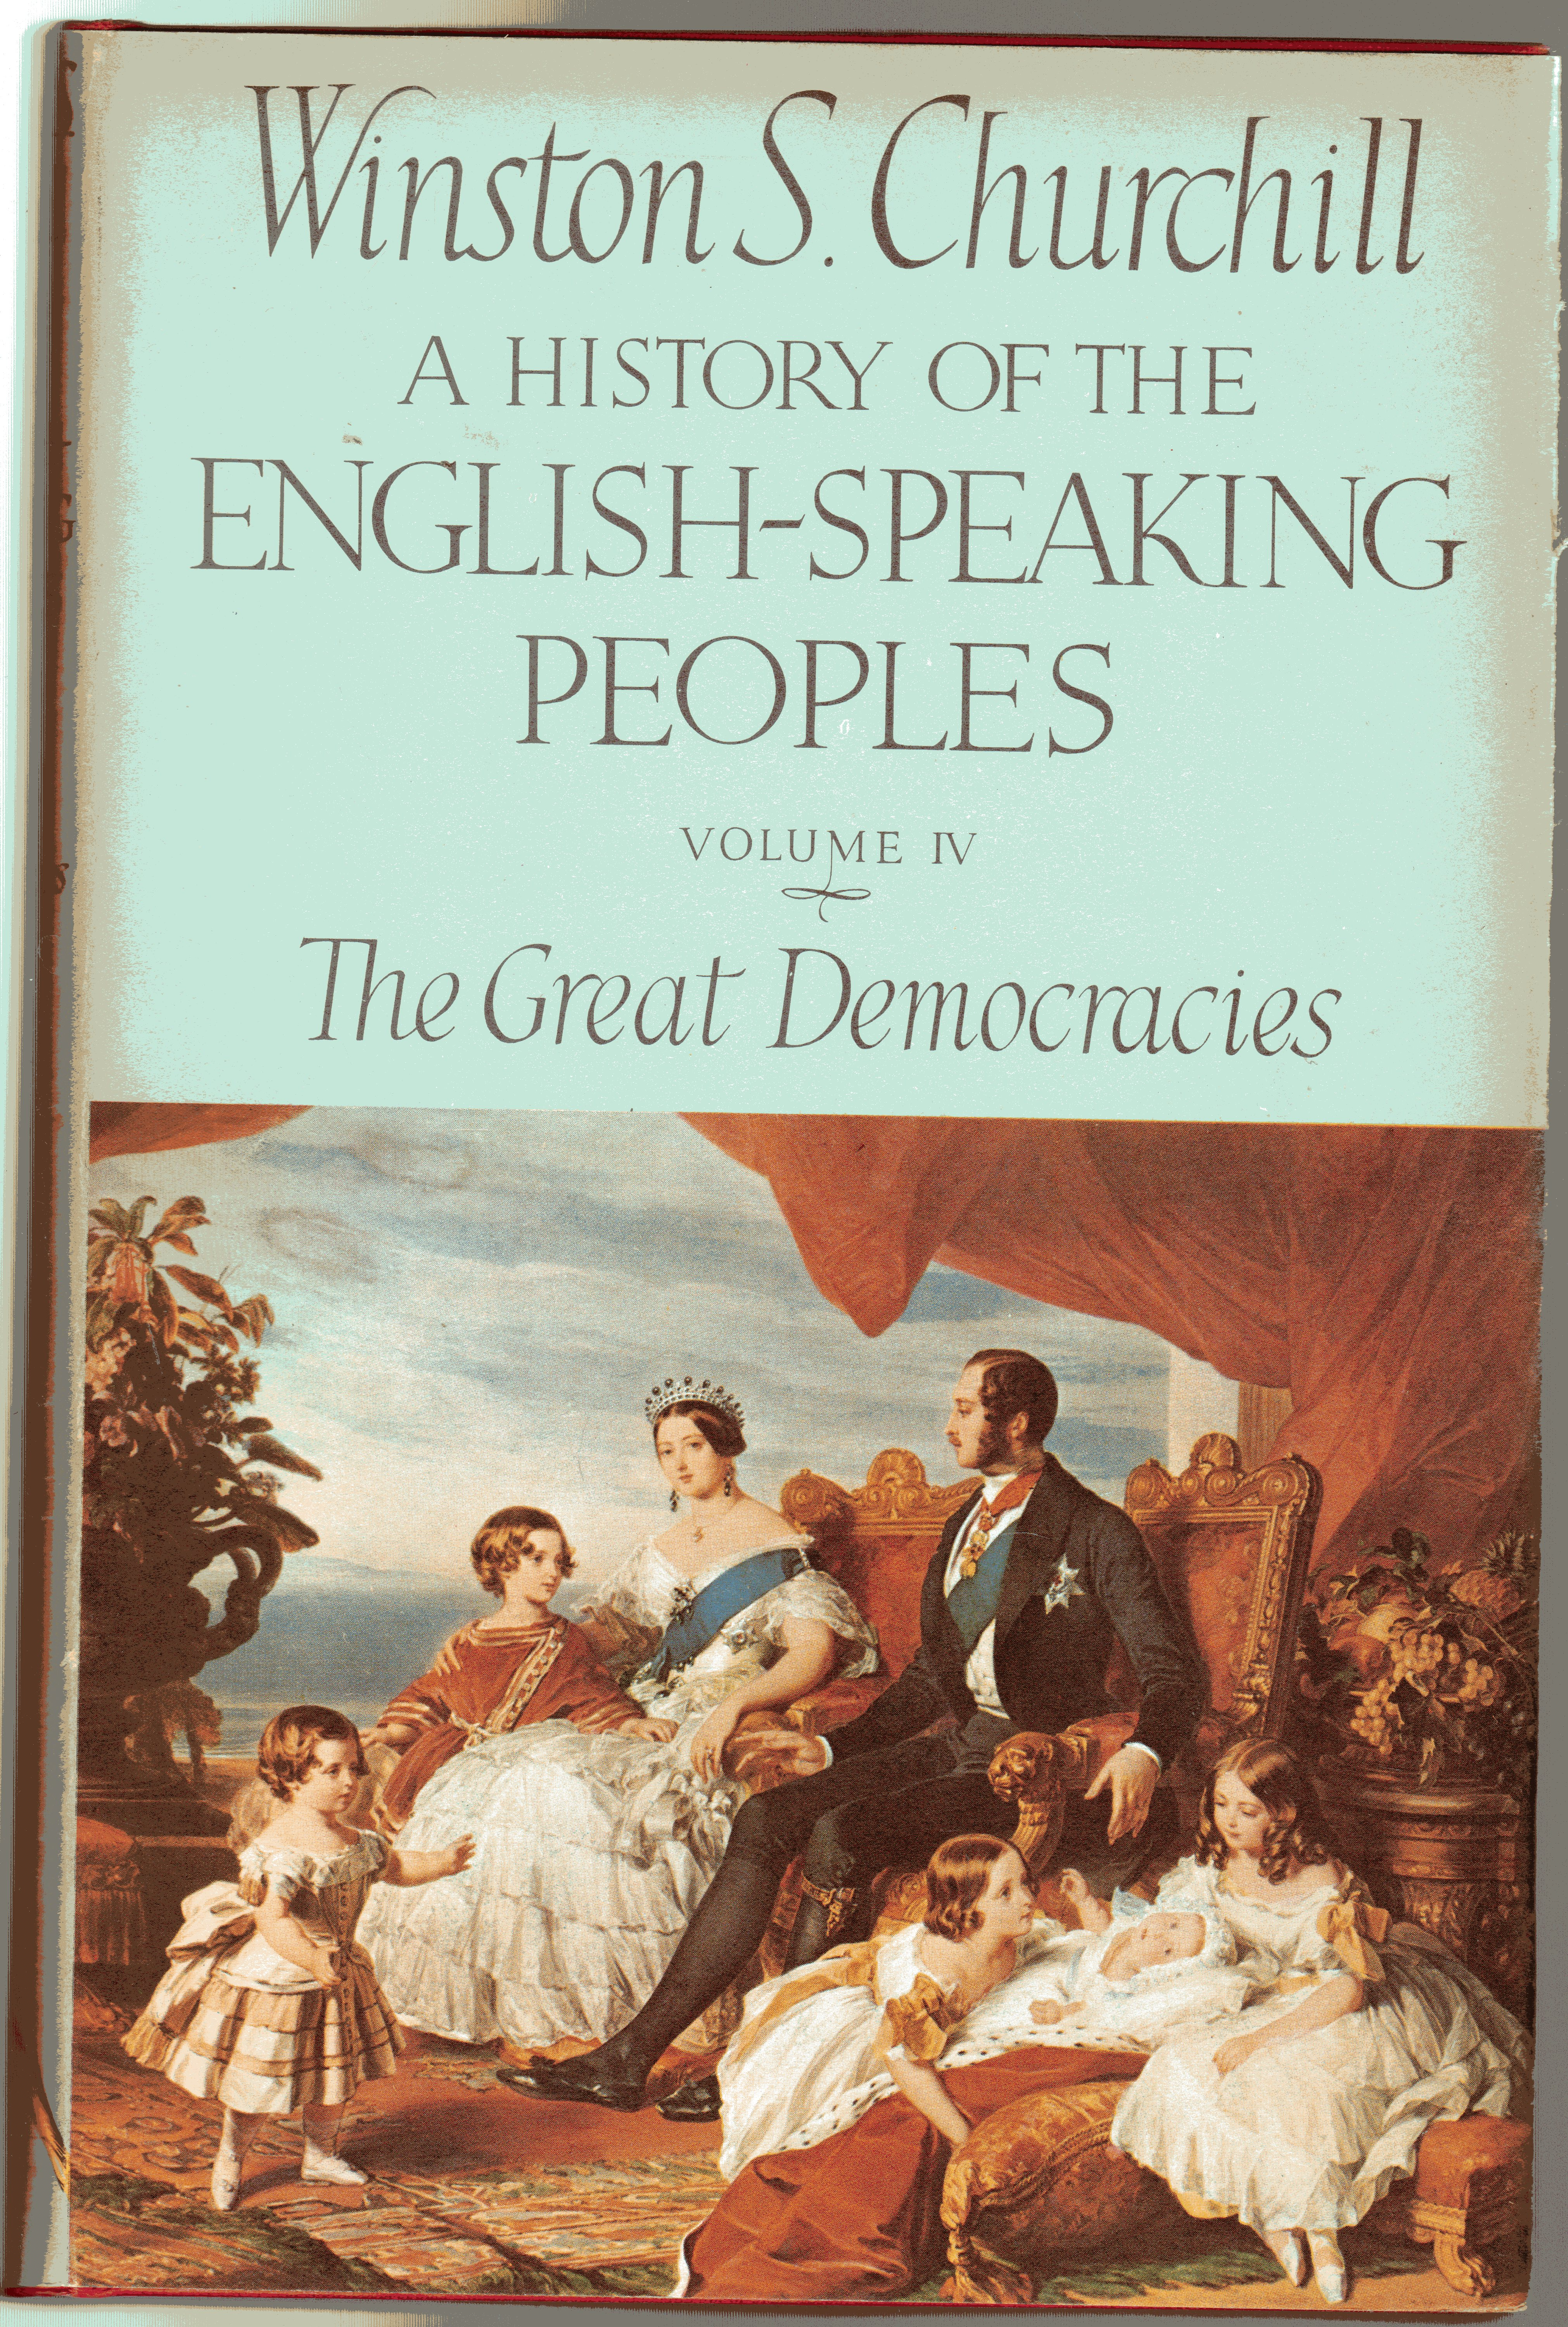 Image for A History of the English-Speaking Peoples - Volume IV - The Great Democracies